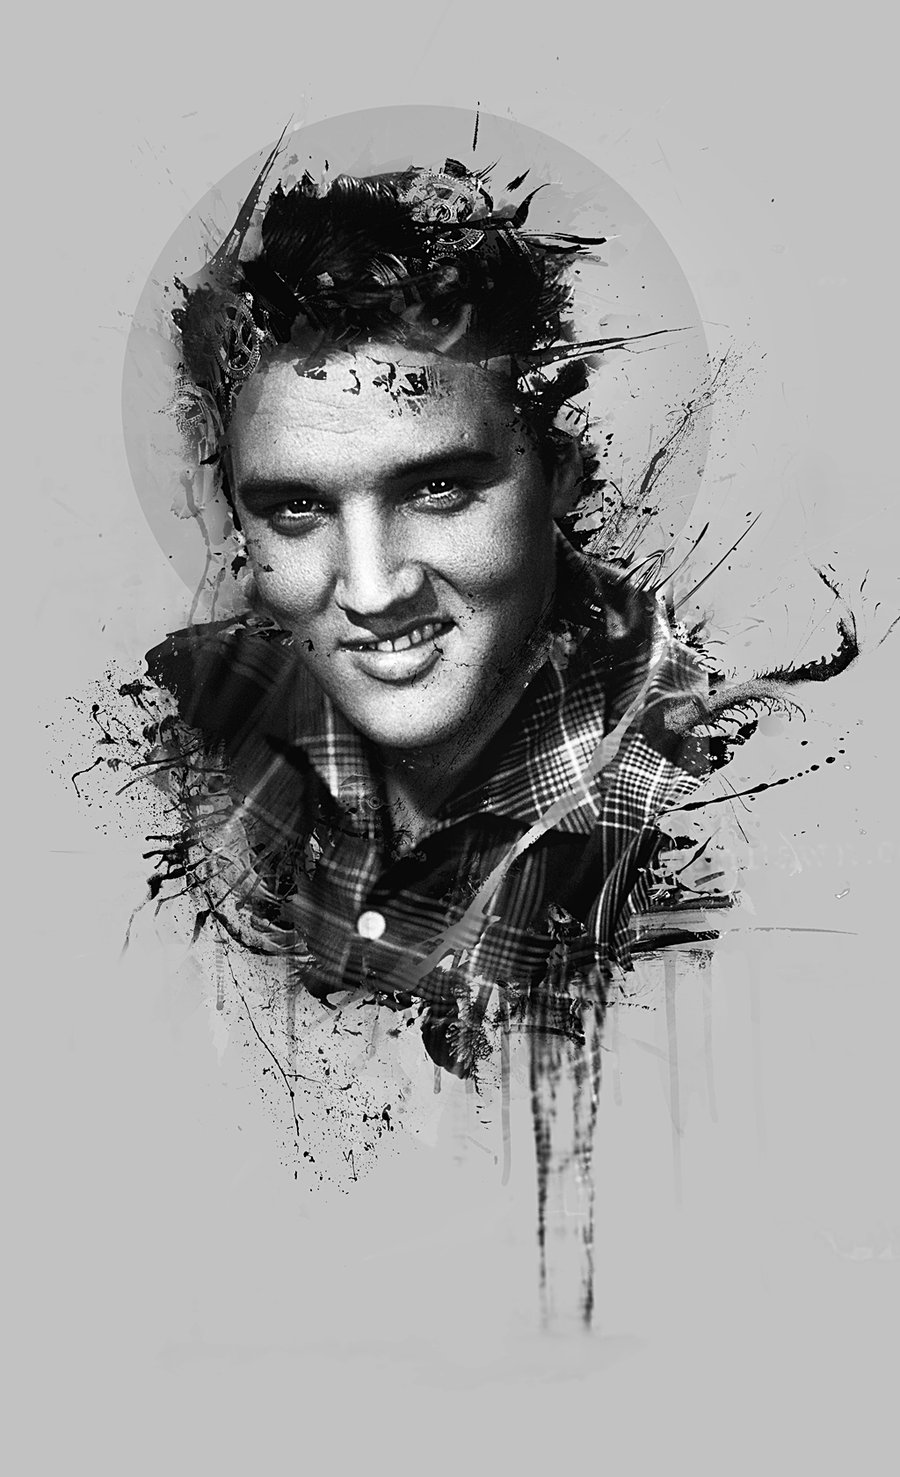 elvis presley drawing stunning quotelvisquot colored pencil drawings and illustrations elvis presley drawing